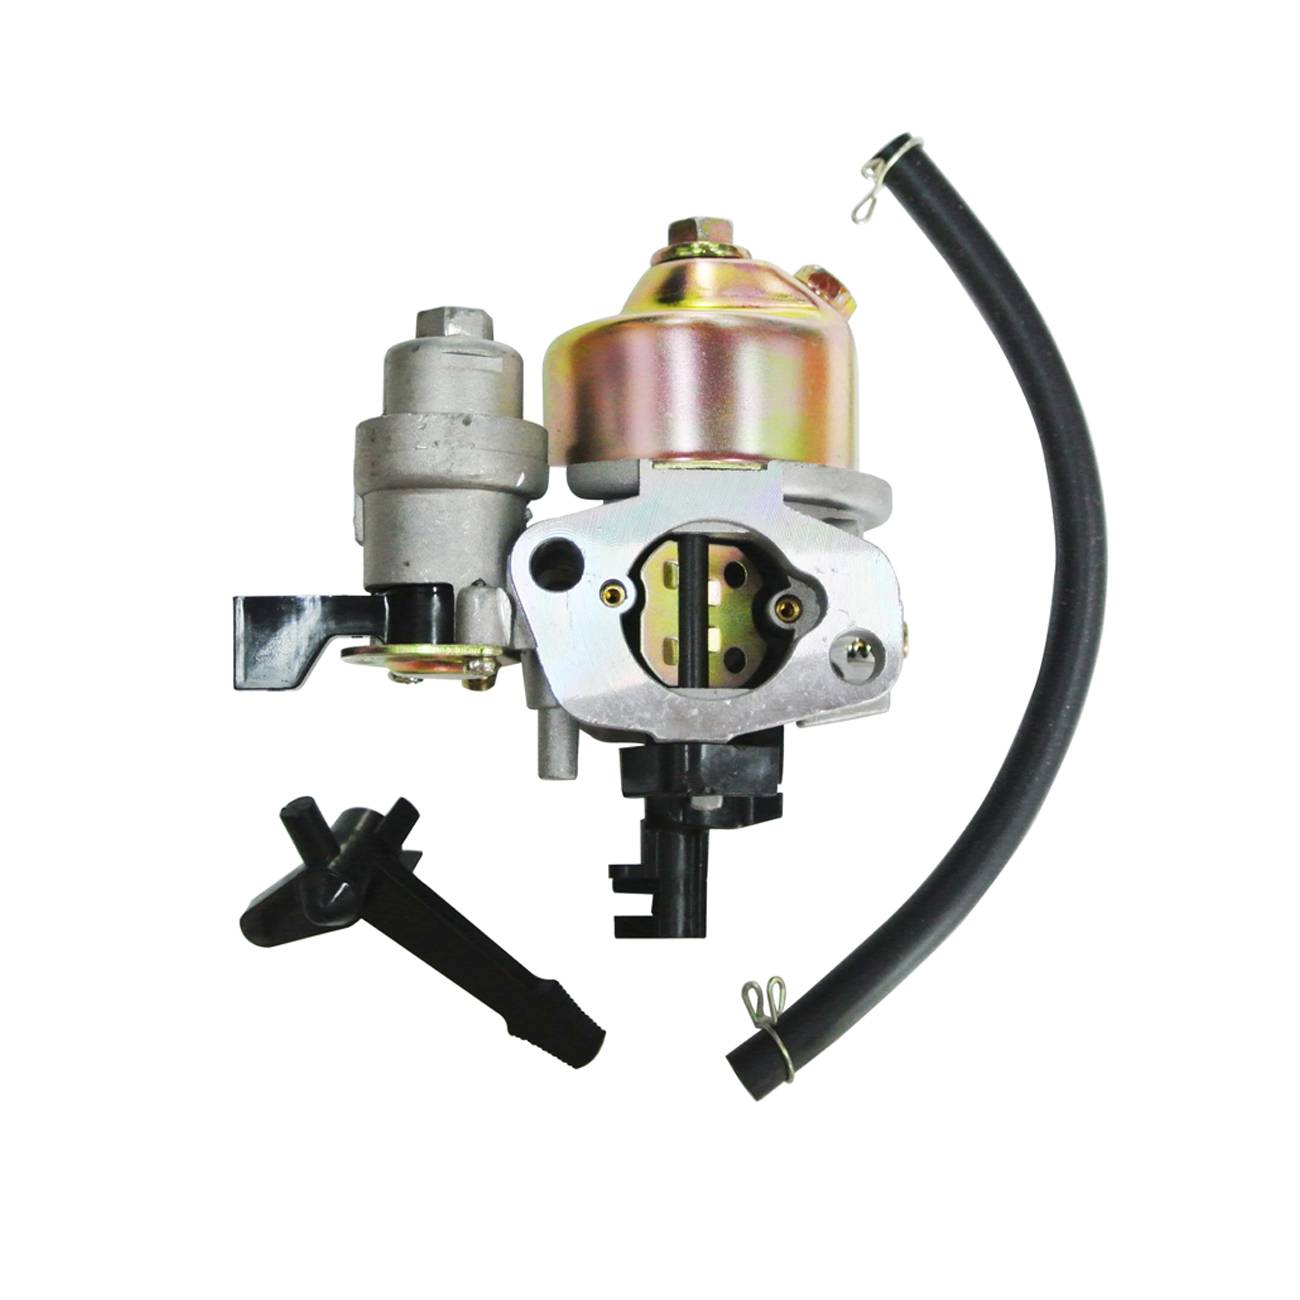 Carburetor For Harbor Freight Greyhound 196cc 6.5HP for LIFAN Engine 66014 66015